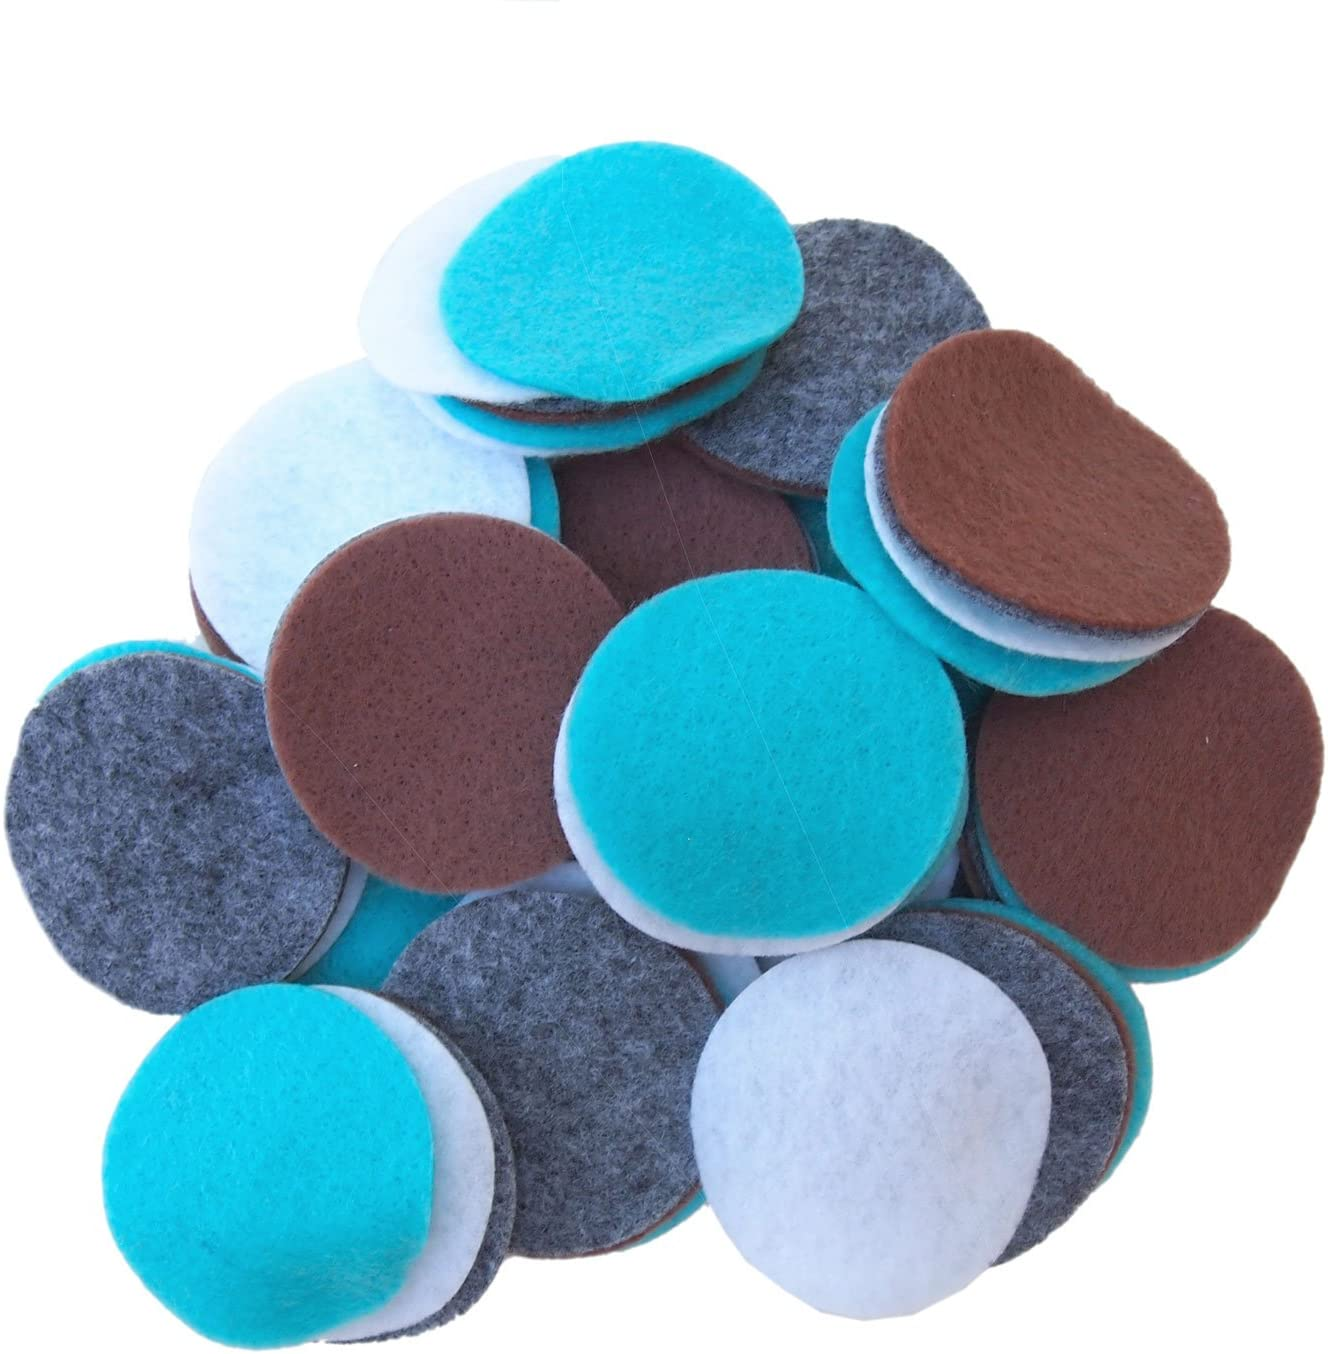 Playfully Ever After Charcoal Gray, Cocoa Brown, Turquoise Blue & White Craft Felt Circles (2.5 Inch - 48pc)